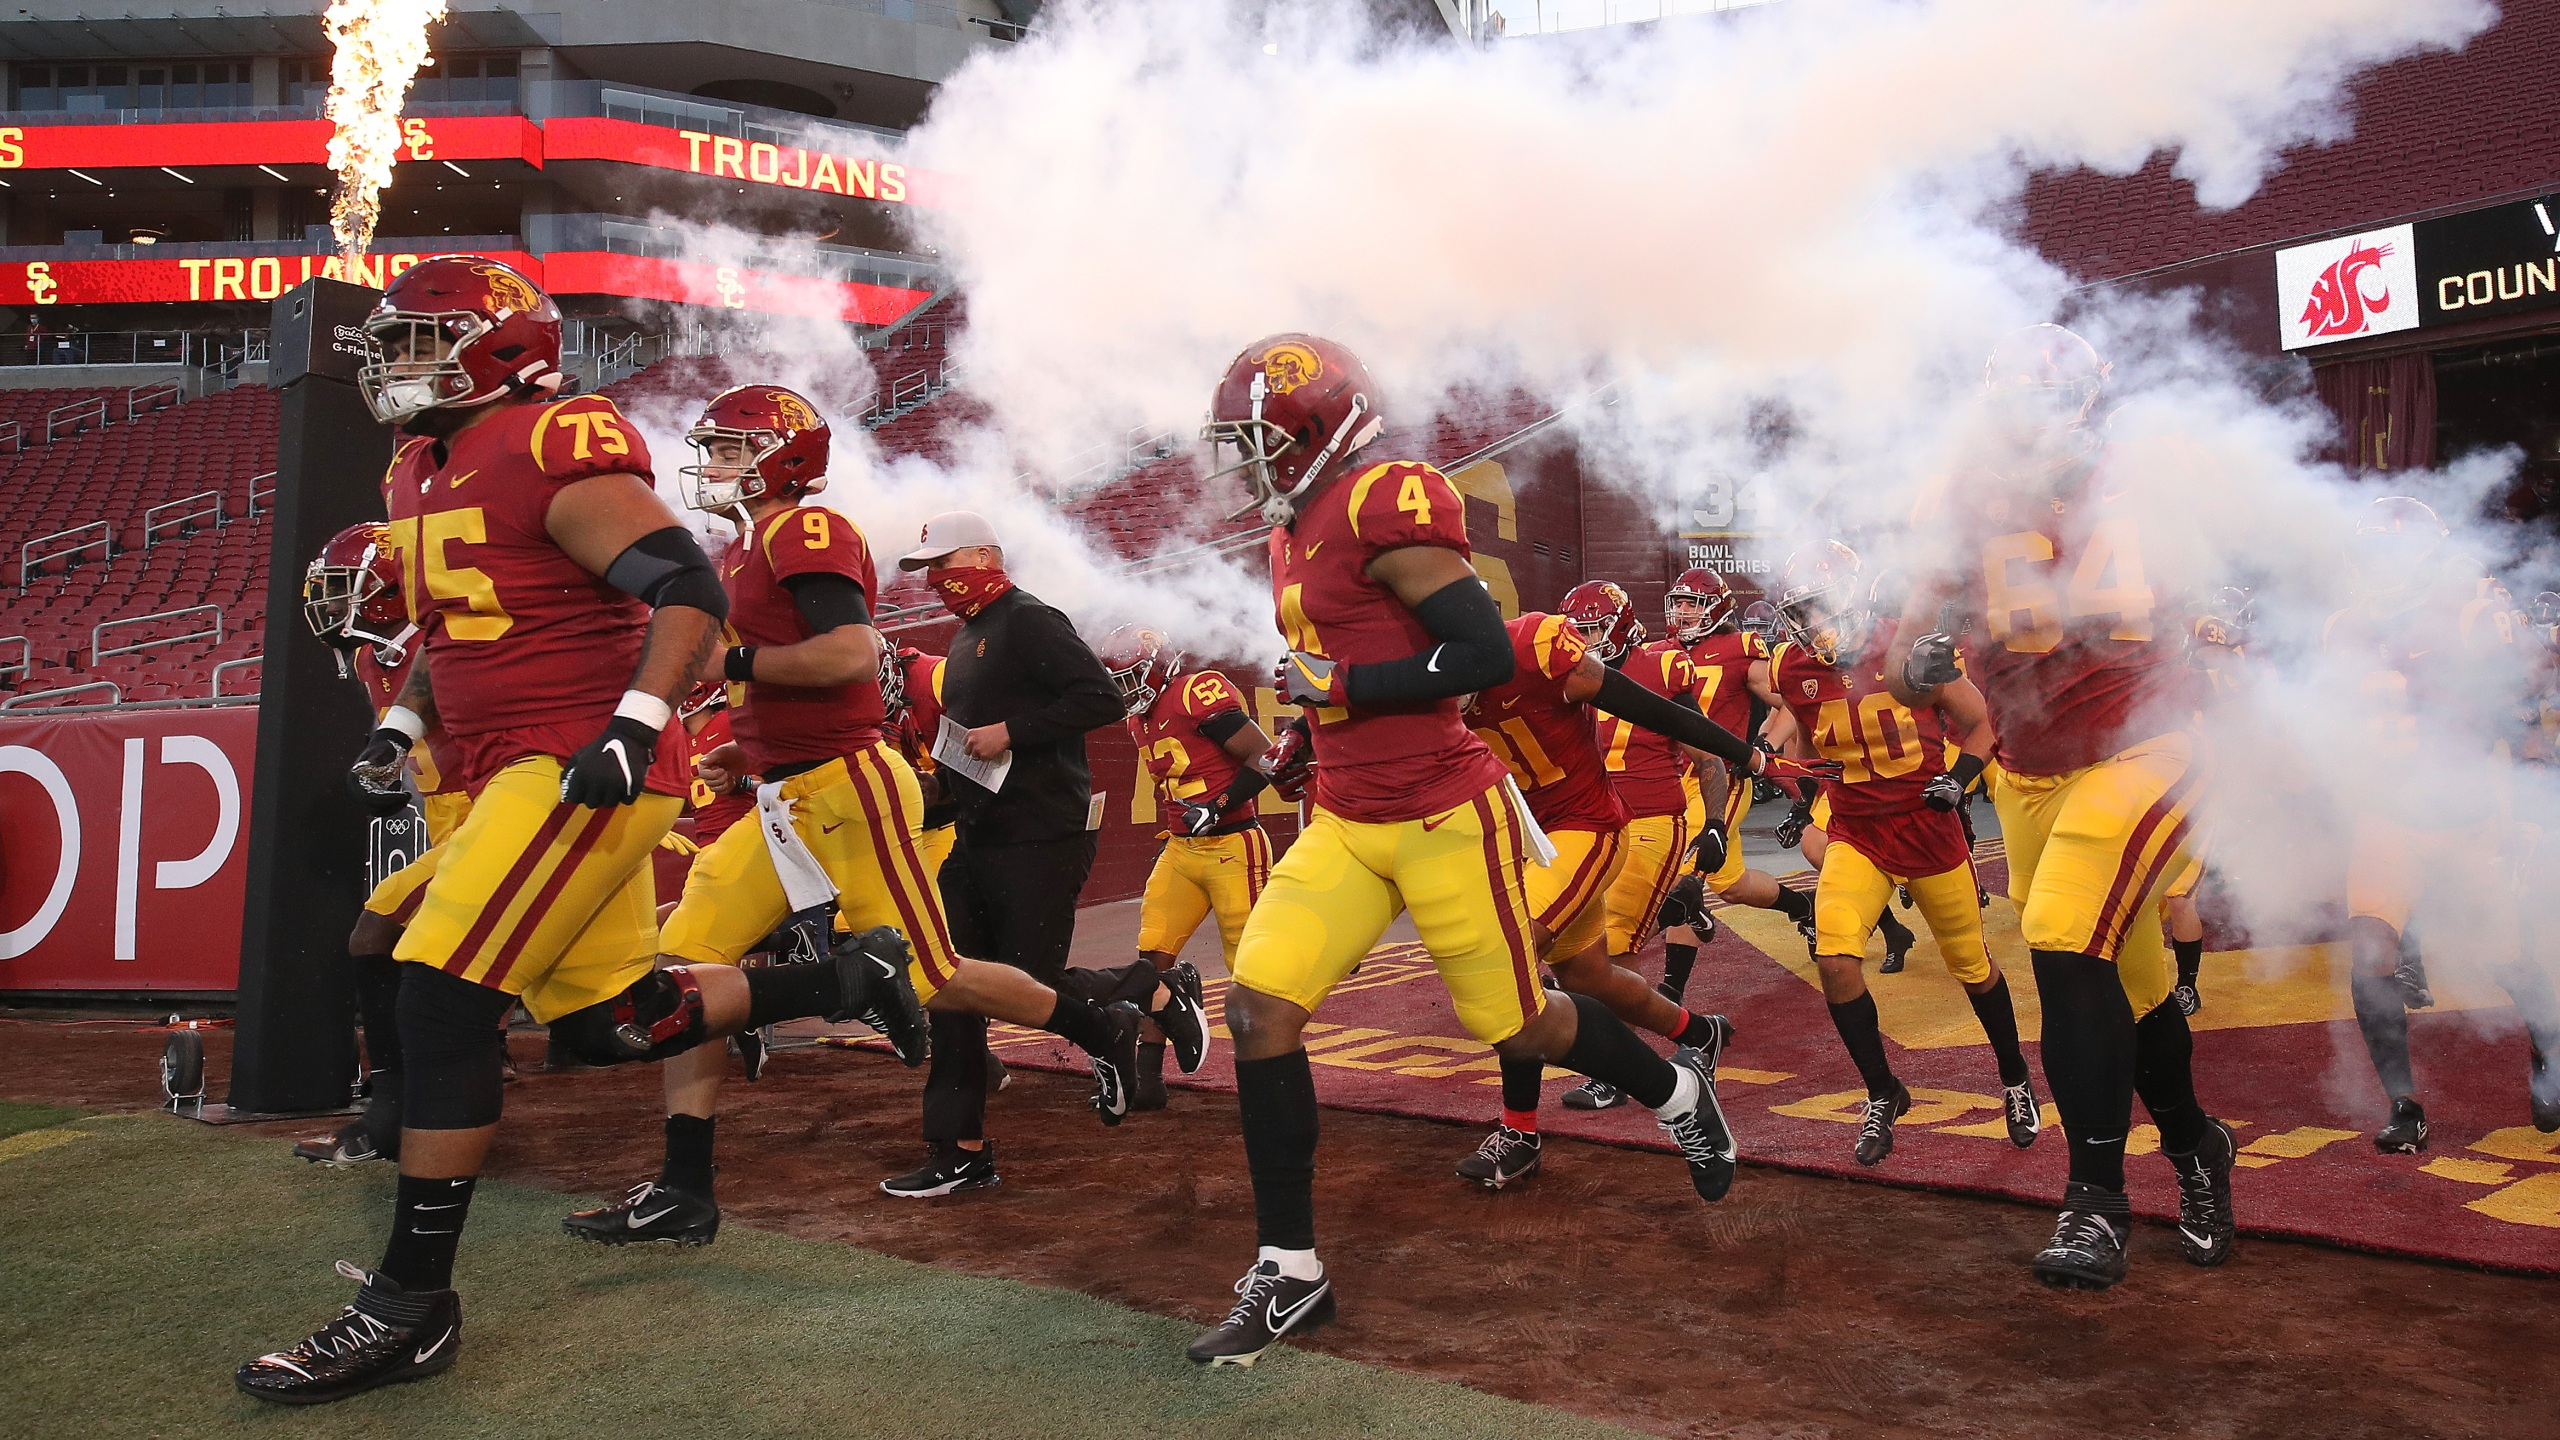 The USC Trojans take the field prior to the first half of a game against the Washington State Cougars at Los Angeles Coliseum on December 06, 2020 in Los Angeles. (Sean M. Haffey/Getty Images)